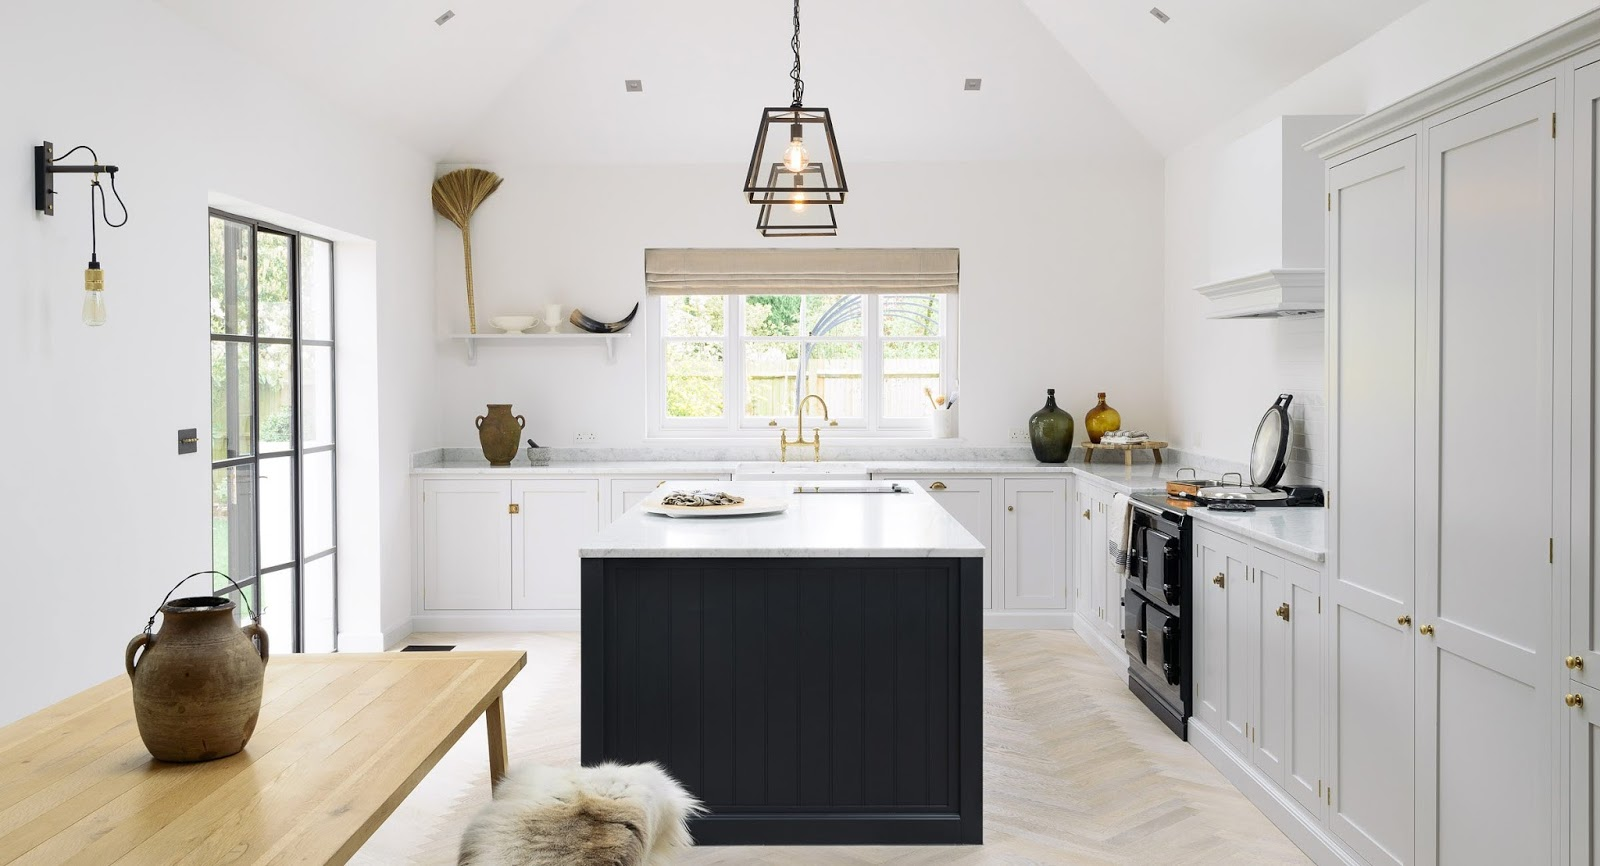 lofty modern farmhouse kitchen with shaker cabinets skylights decor inspiration - Modern Farmhouse Kitchen